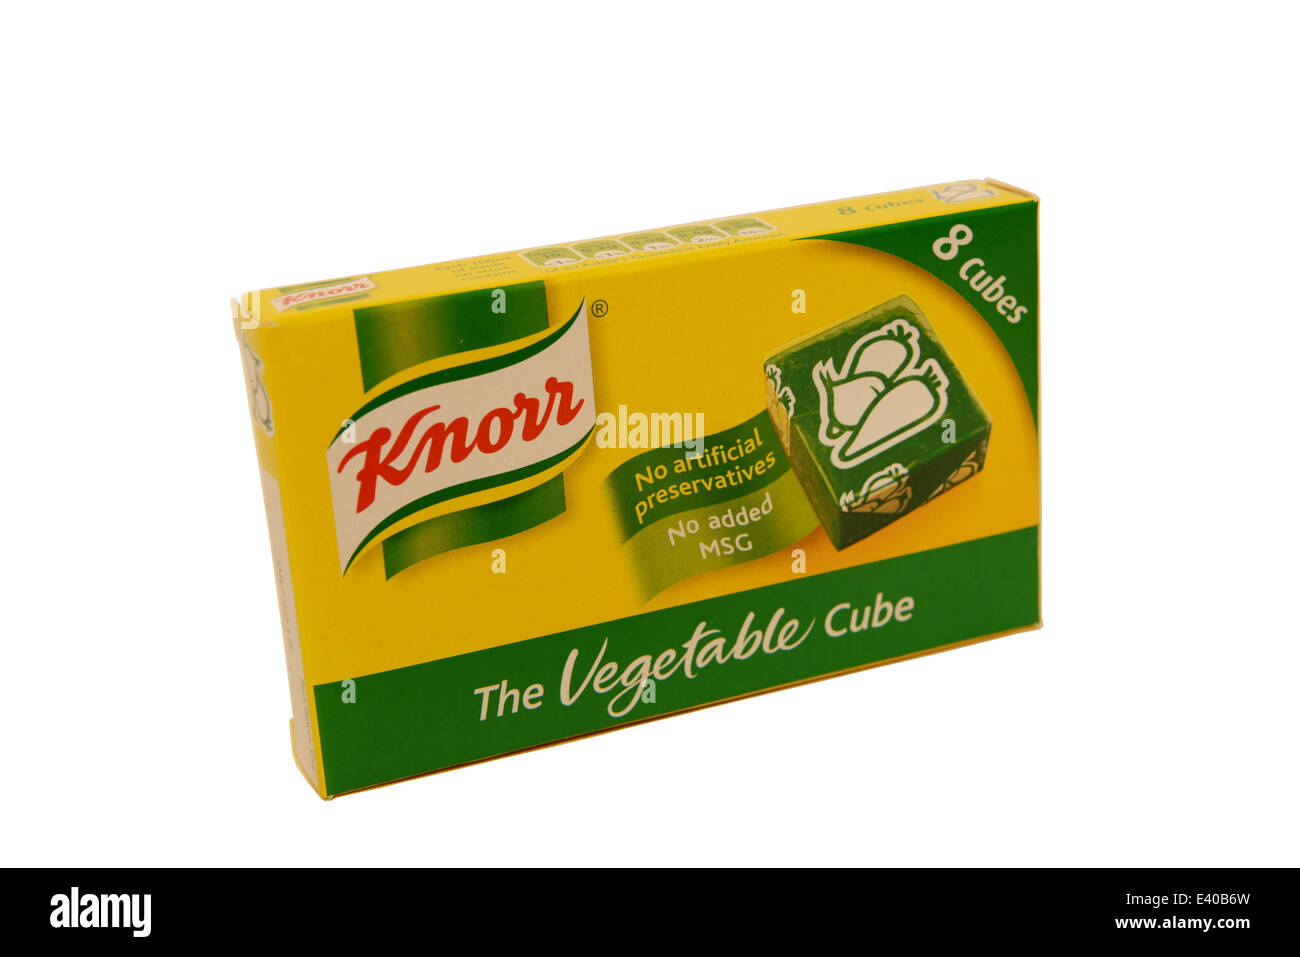 Knorr Stock Cubes - Stock Image